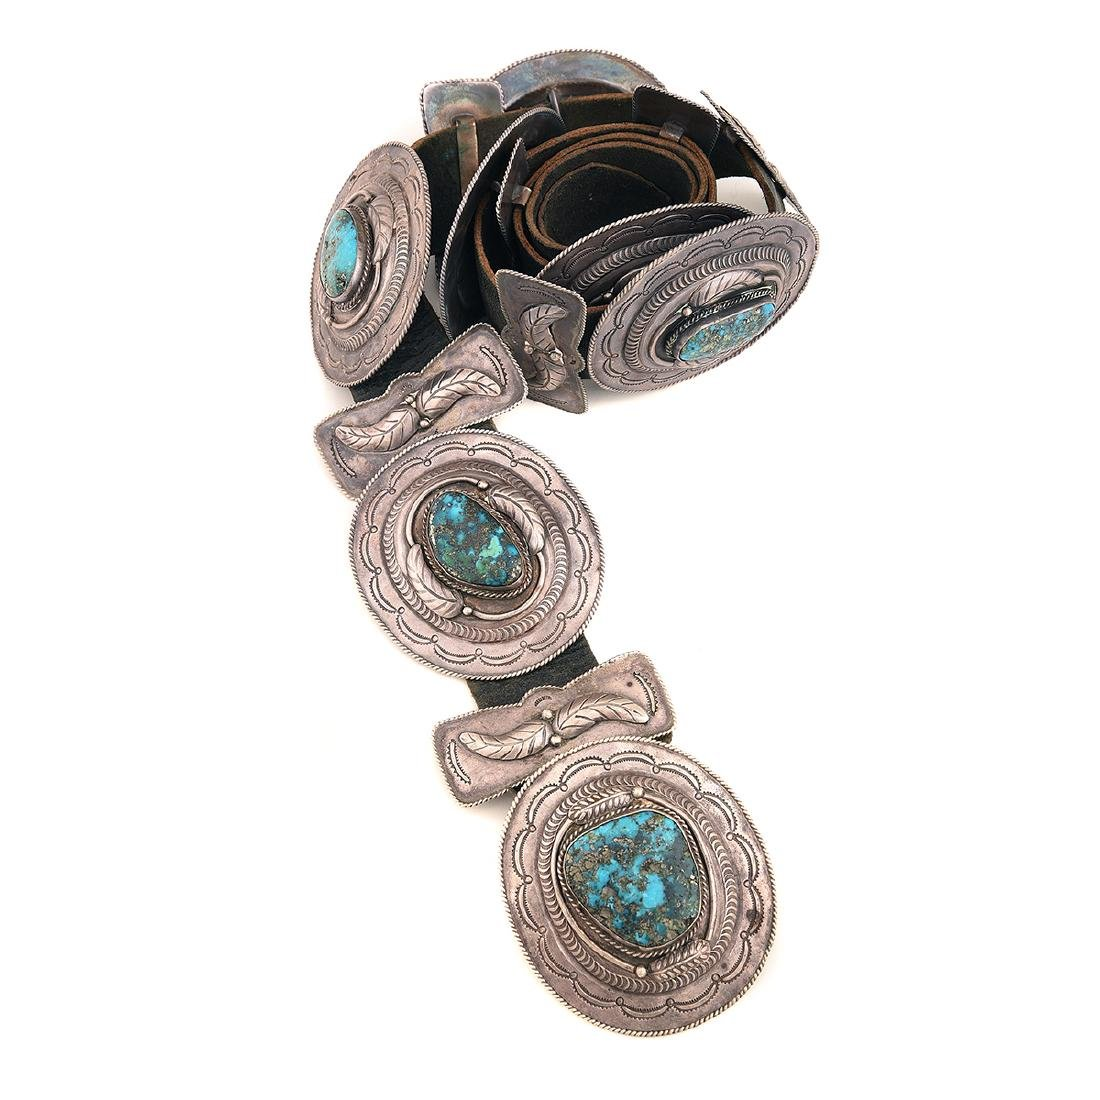 Native American Turquoise, Silver, Leather Concho Belt.